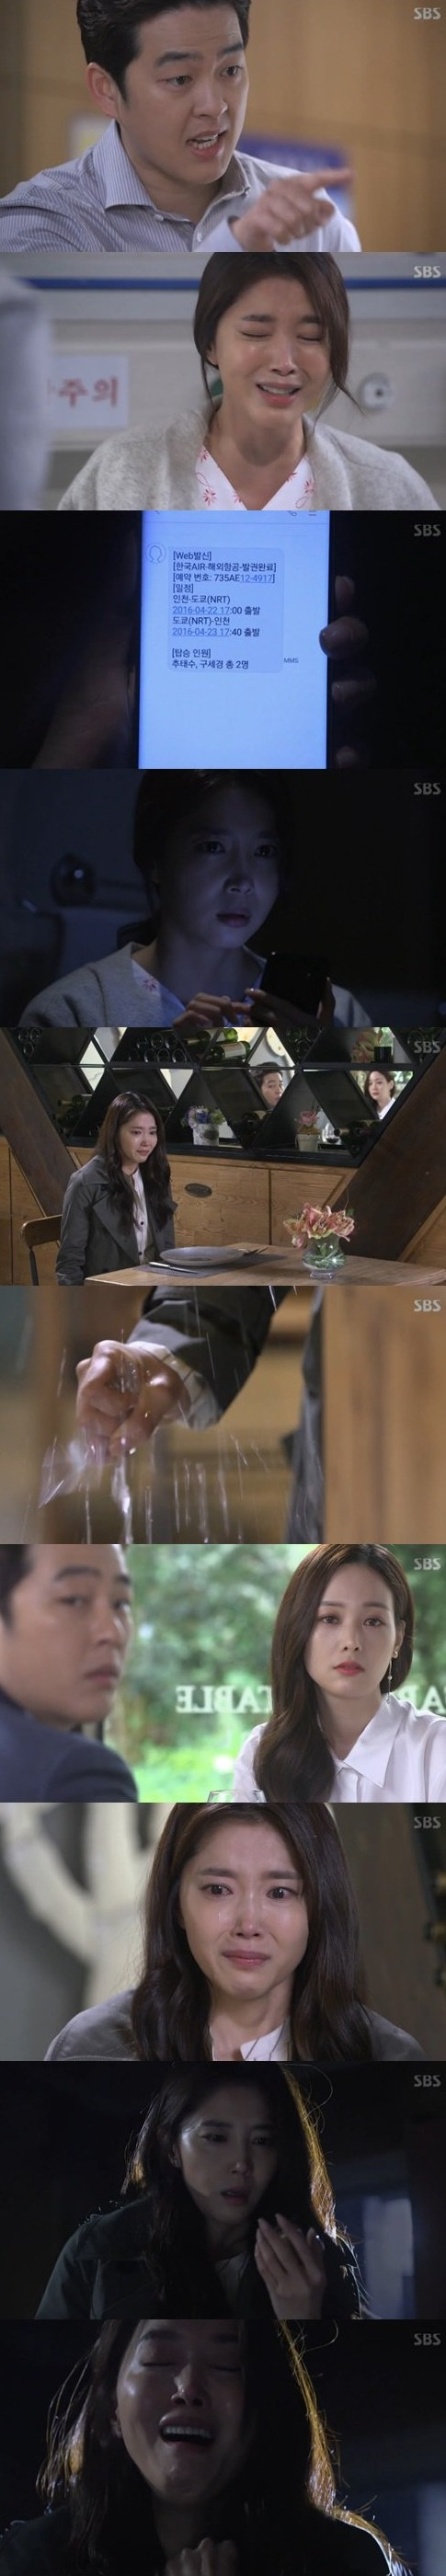 [Spoiler] Added episodes 5 and 6 captures for the Korean drama 'Sister is Alive'